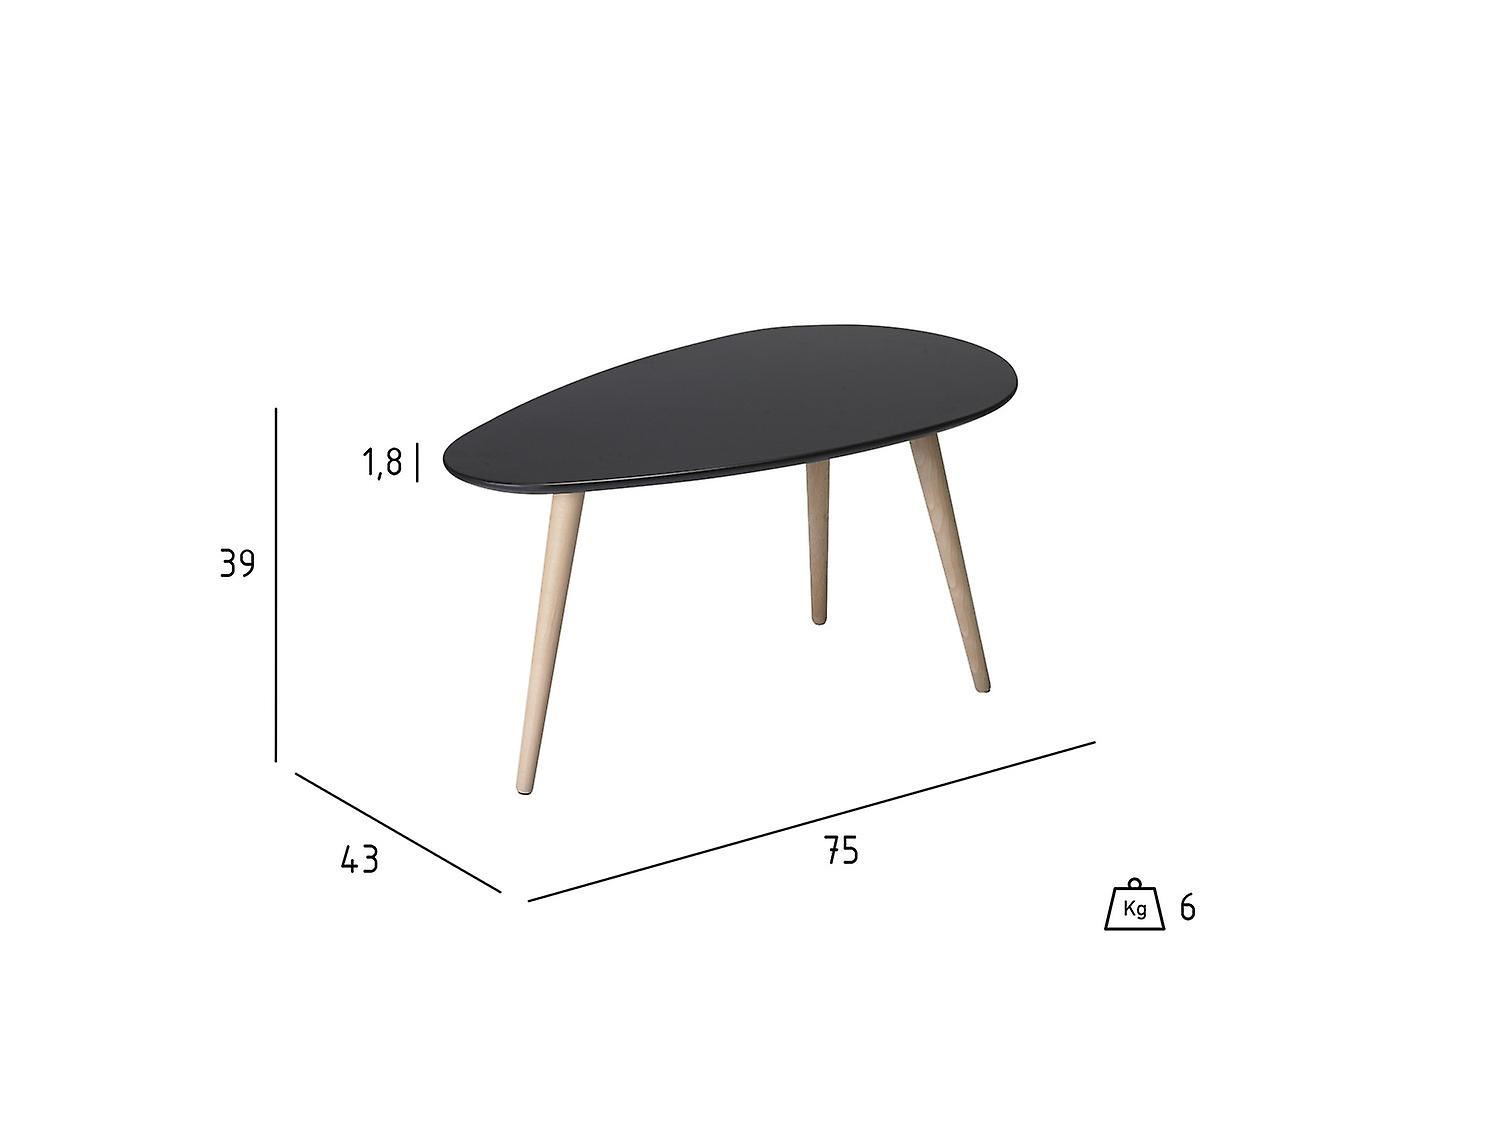 Furnhouse Fly Coffee Table Small,  Black Top, Wooden Legs, 75x43x39 cm